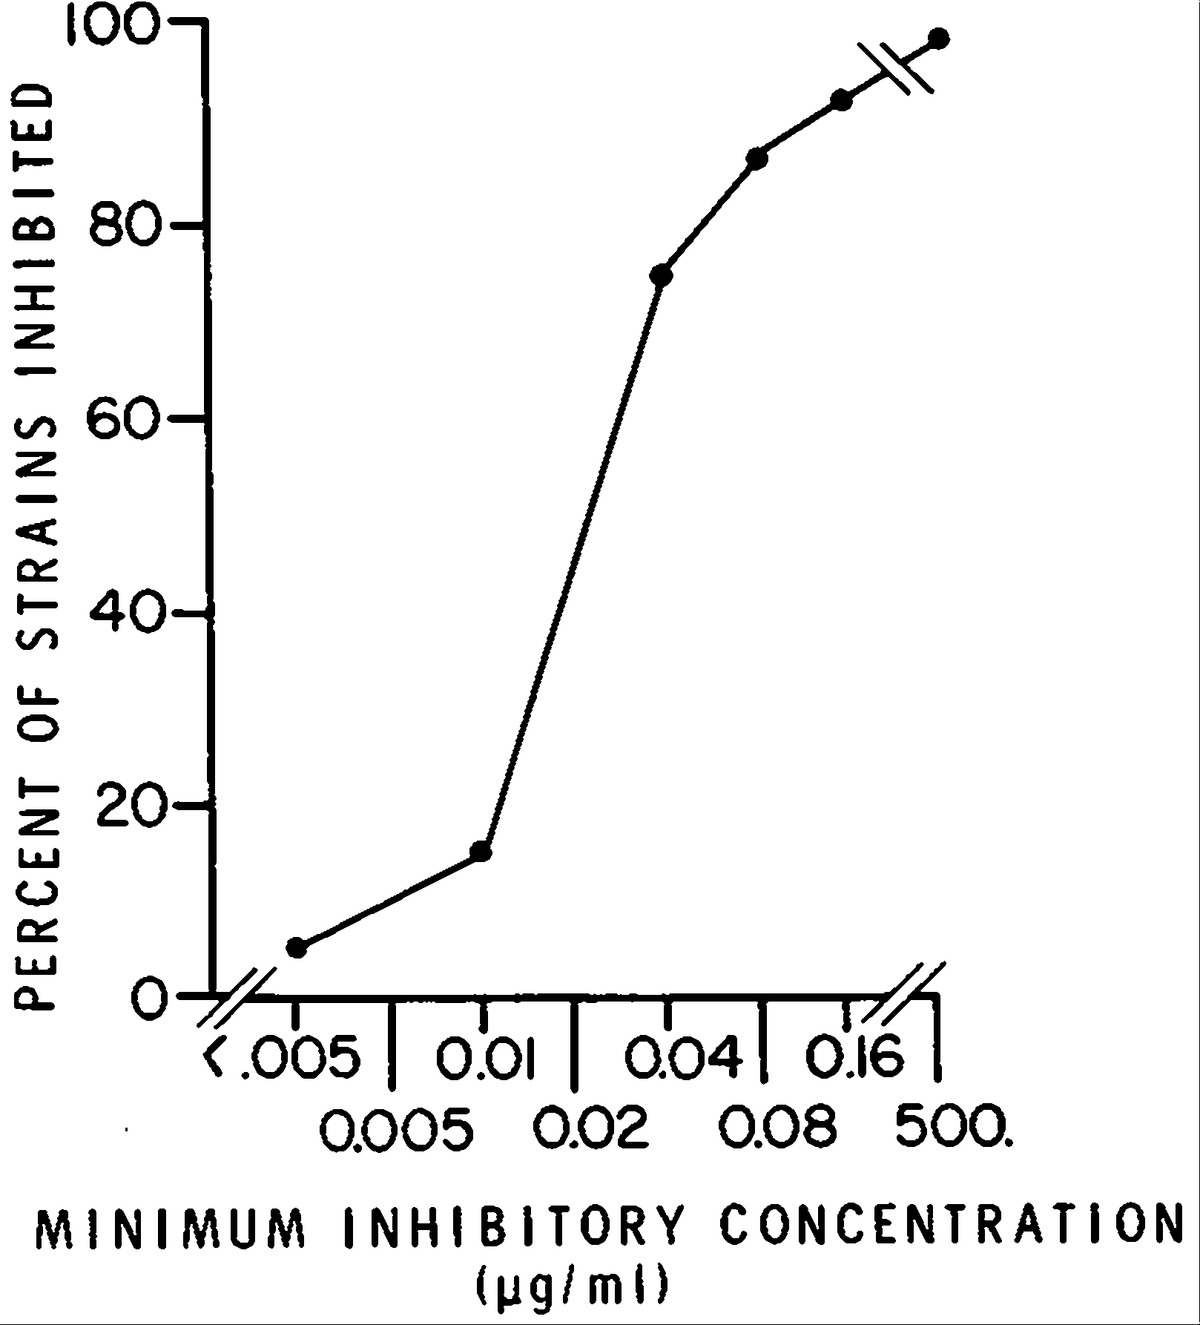 Minimum inhibitory concentration thesis